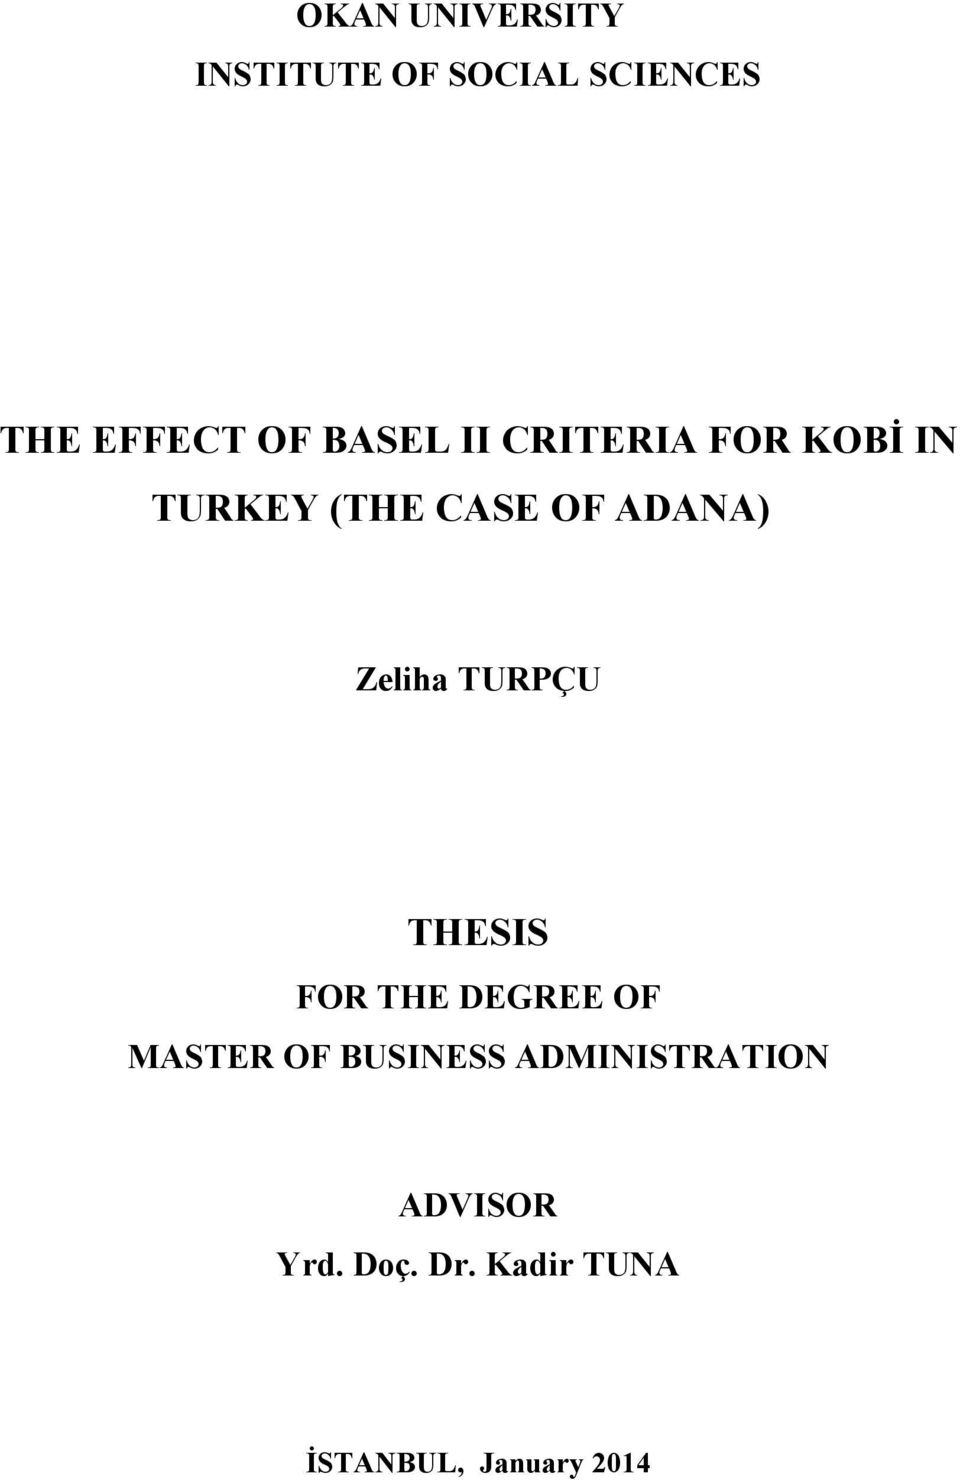 Zeliha TURPÇU THESIS FOR THE DEGREE OF MASTER OF BUSINESS